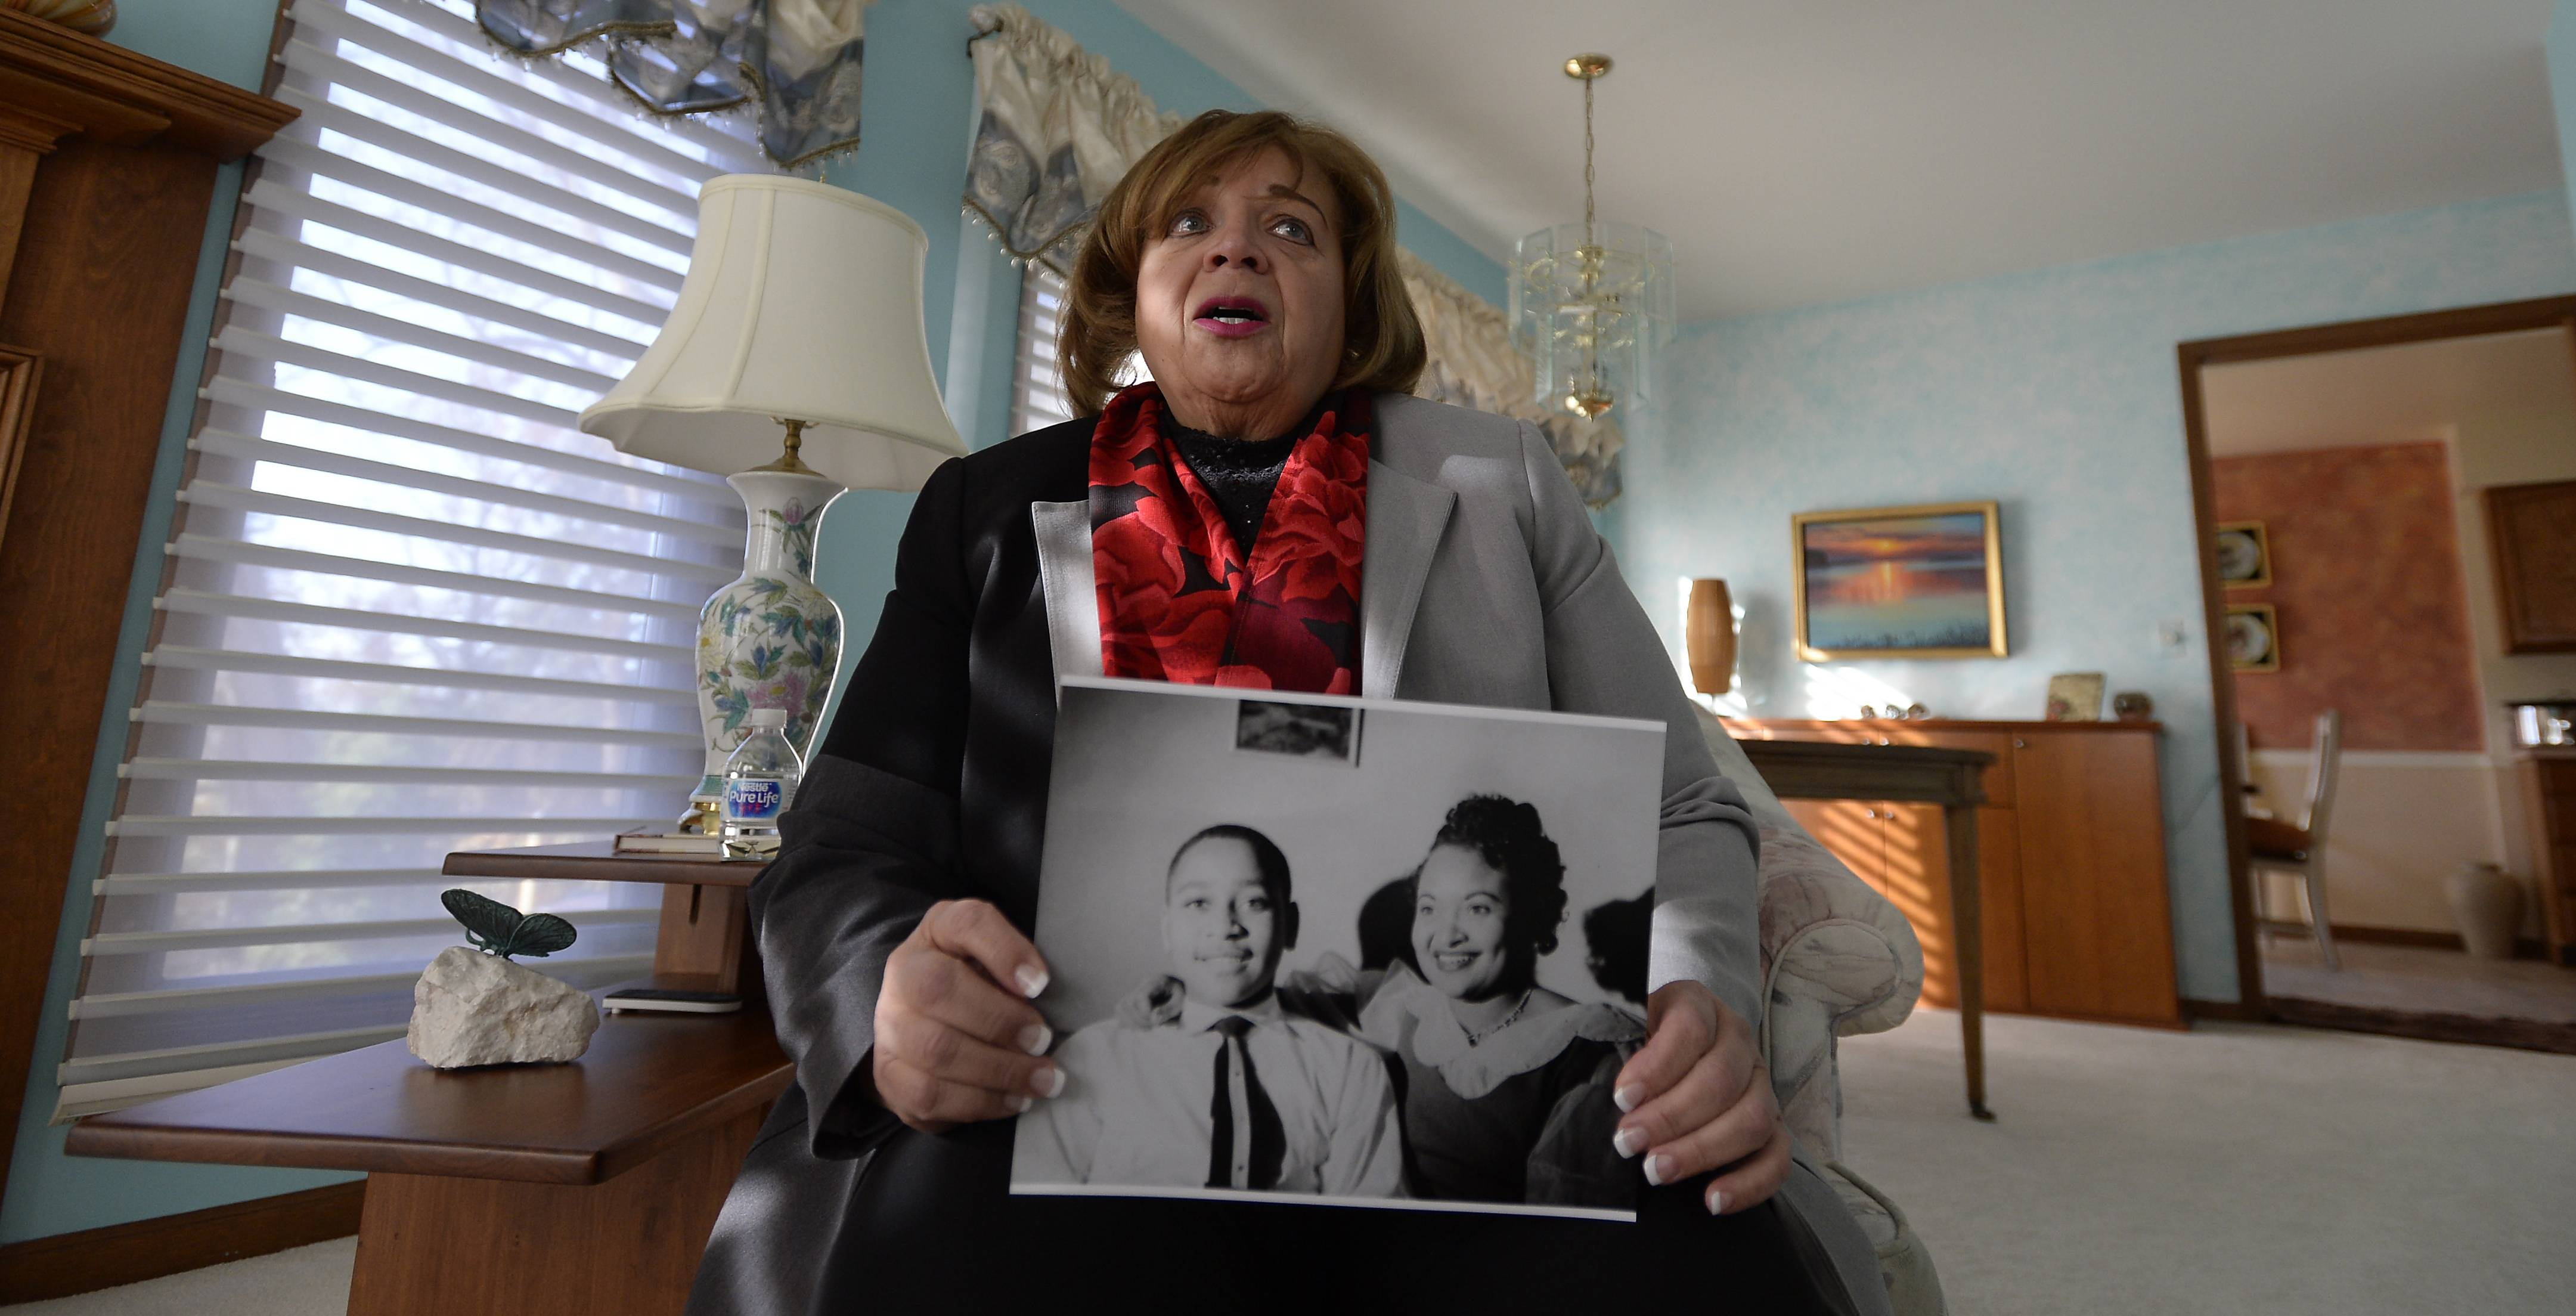 After her cousin Emmett Till was murdered and his mother, Mamie, helped make his death a focal point in the civil rights movement, Phyllis Smith went decades without talking about it. Now, the retired teacher from Glen Ellyn wants to use her cousin's slaying as motivation to bring people together.